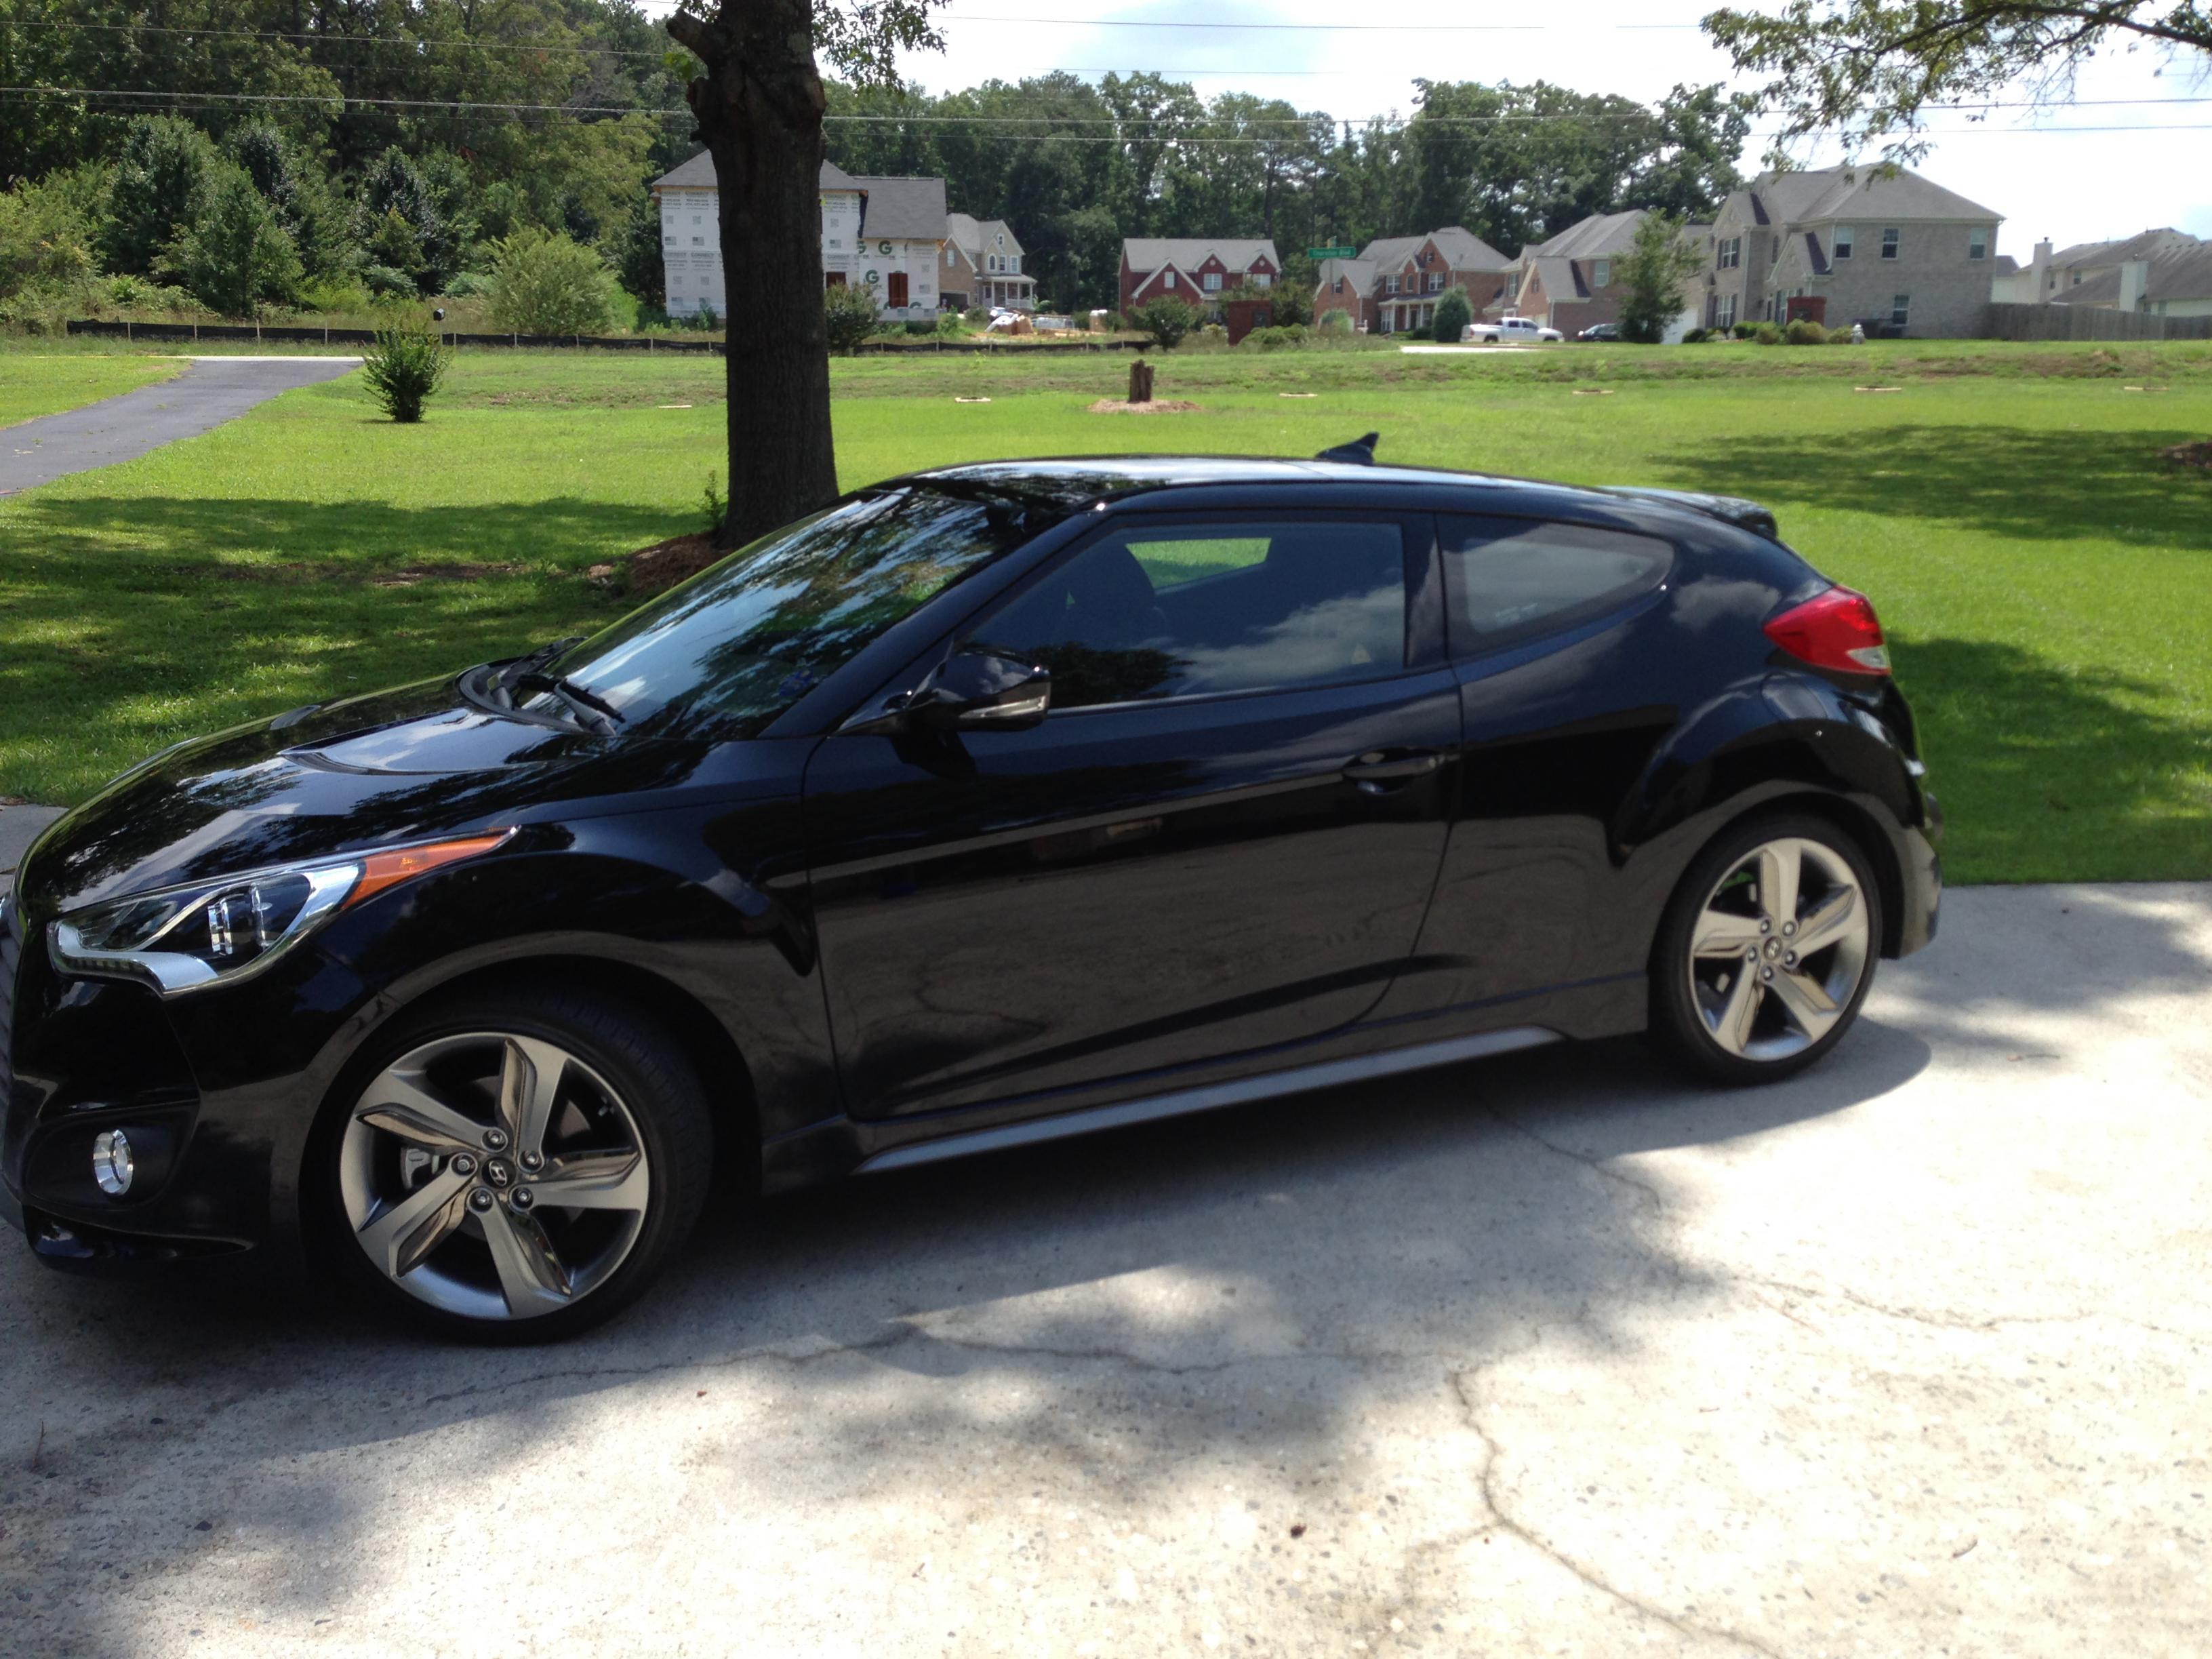 2014 Hyundai Veloster Springfield, IL, Dent Repair http://217dent.com